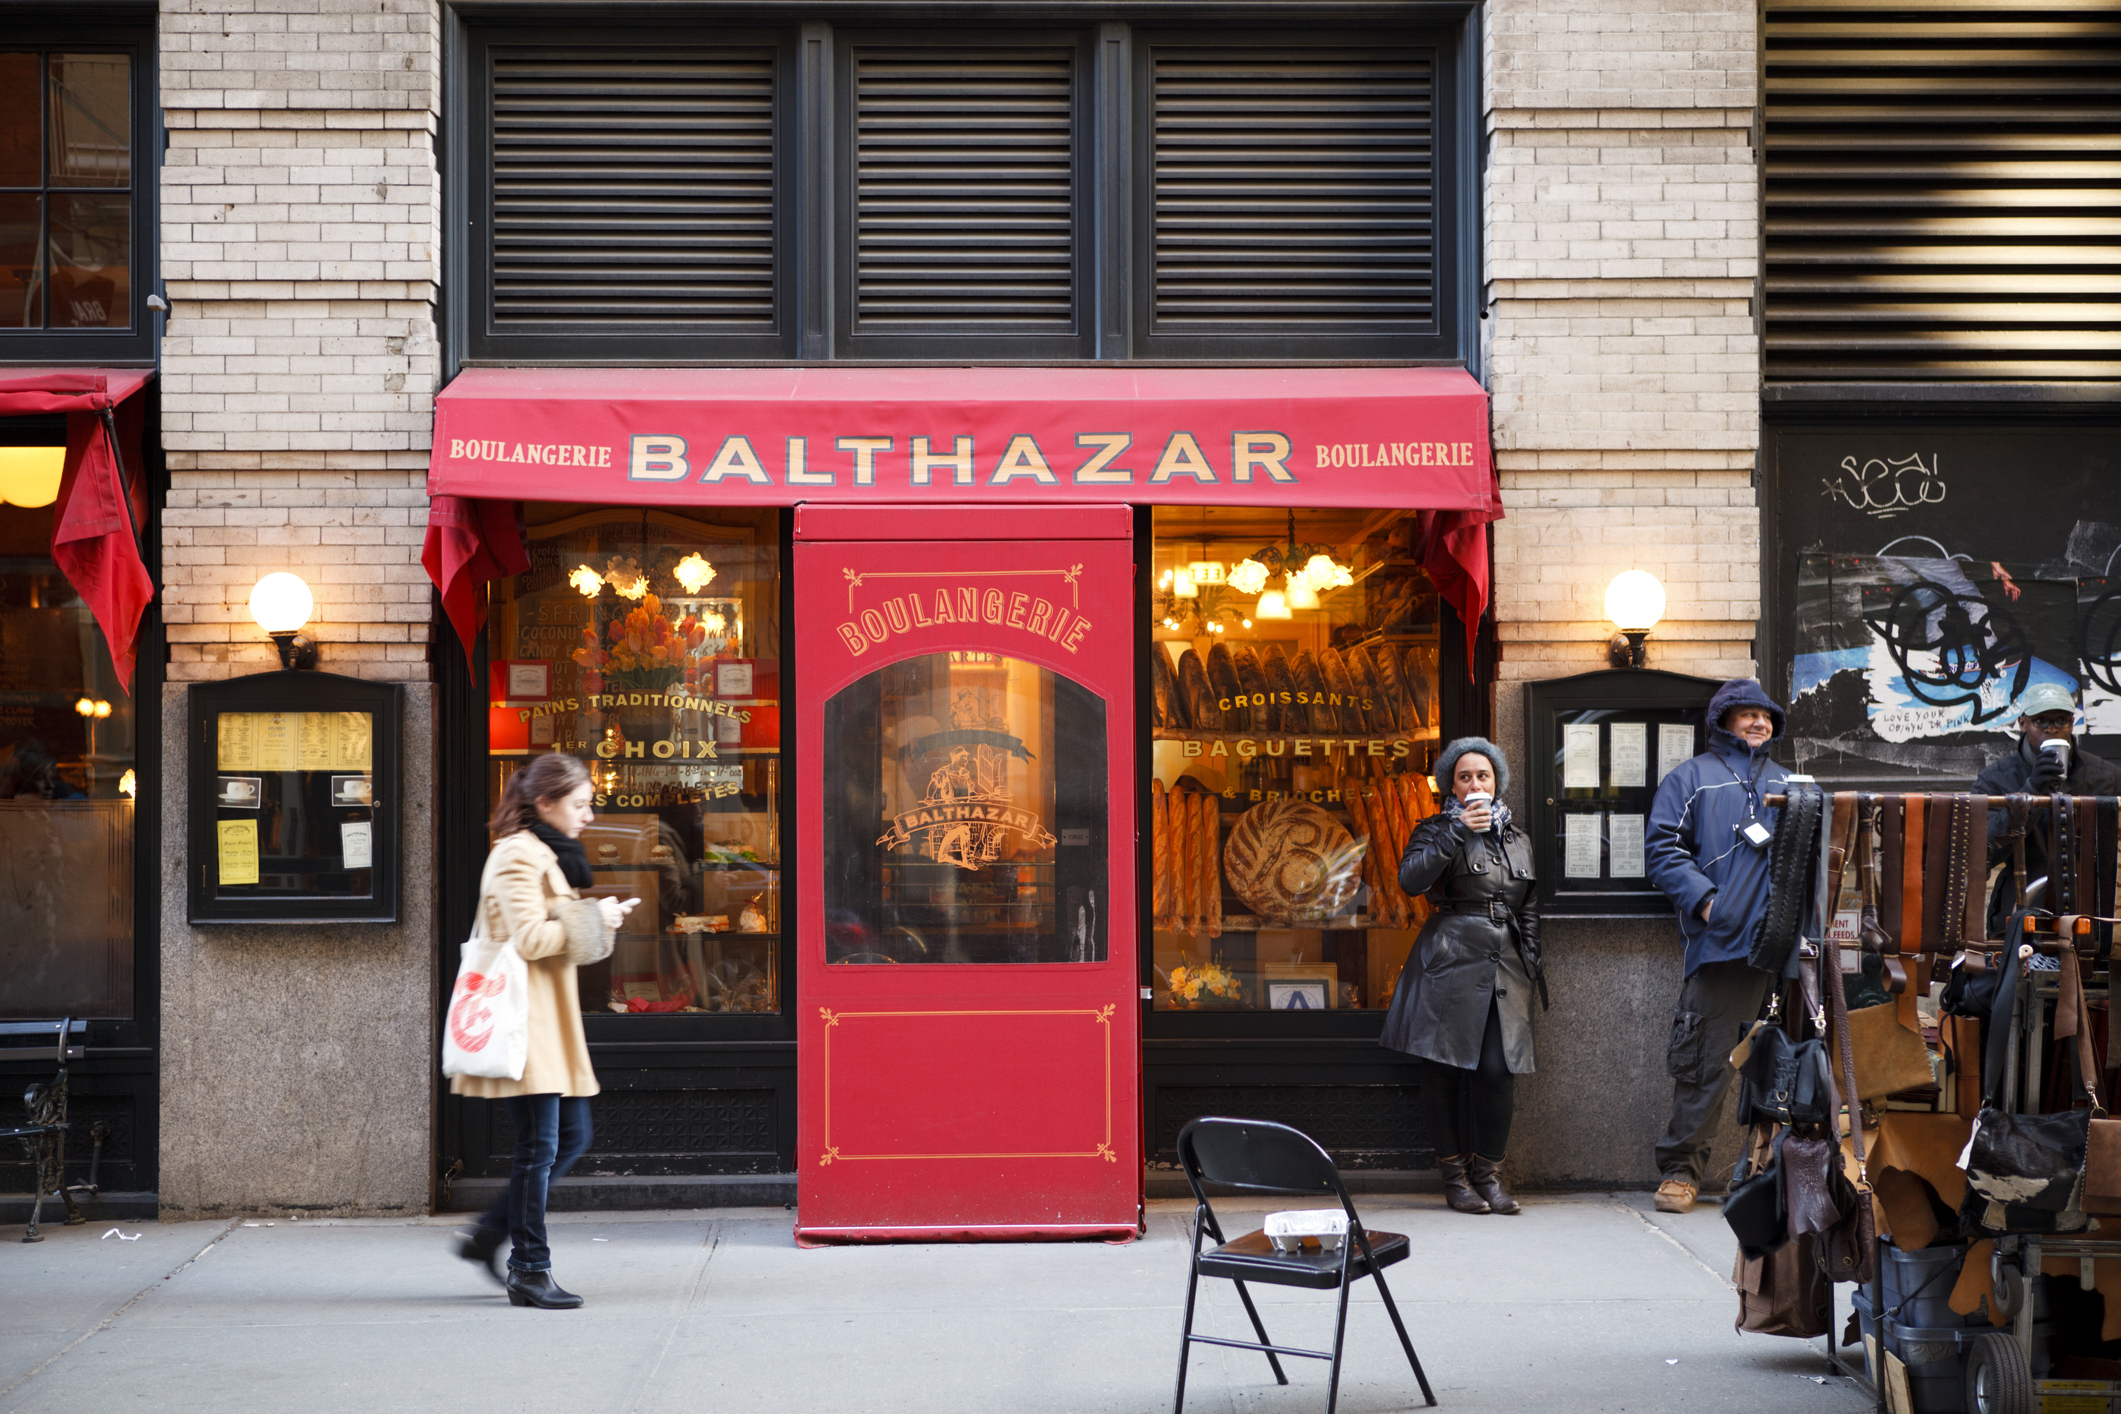 Balthazar restaurant in Soho.